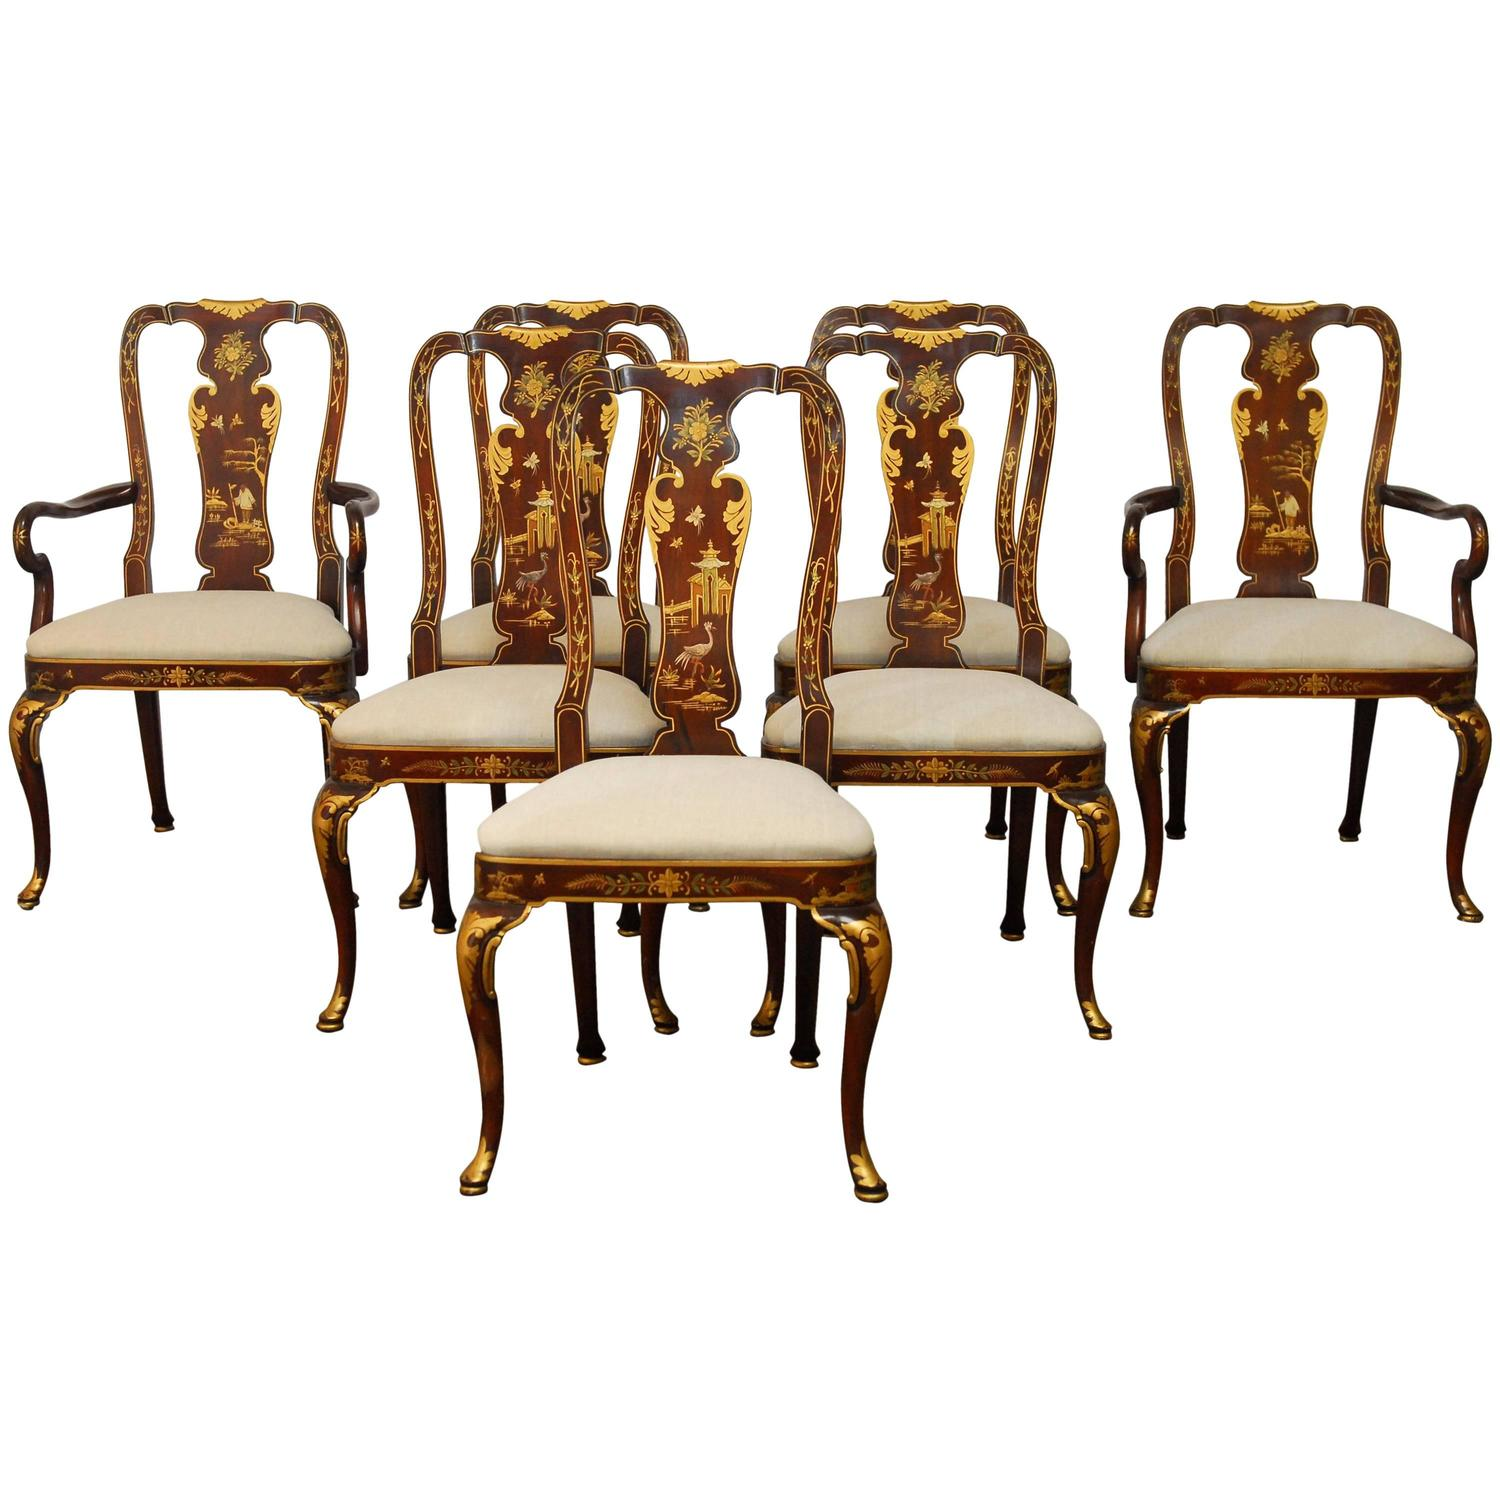 Set of seven chinoiserie queen anne dining chairs at 1stdibs - Queen anne dining room furniture ...